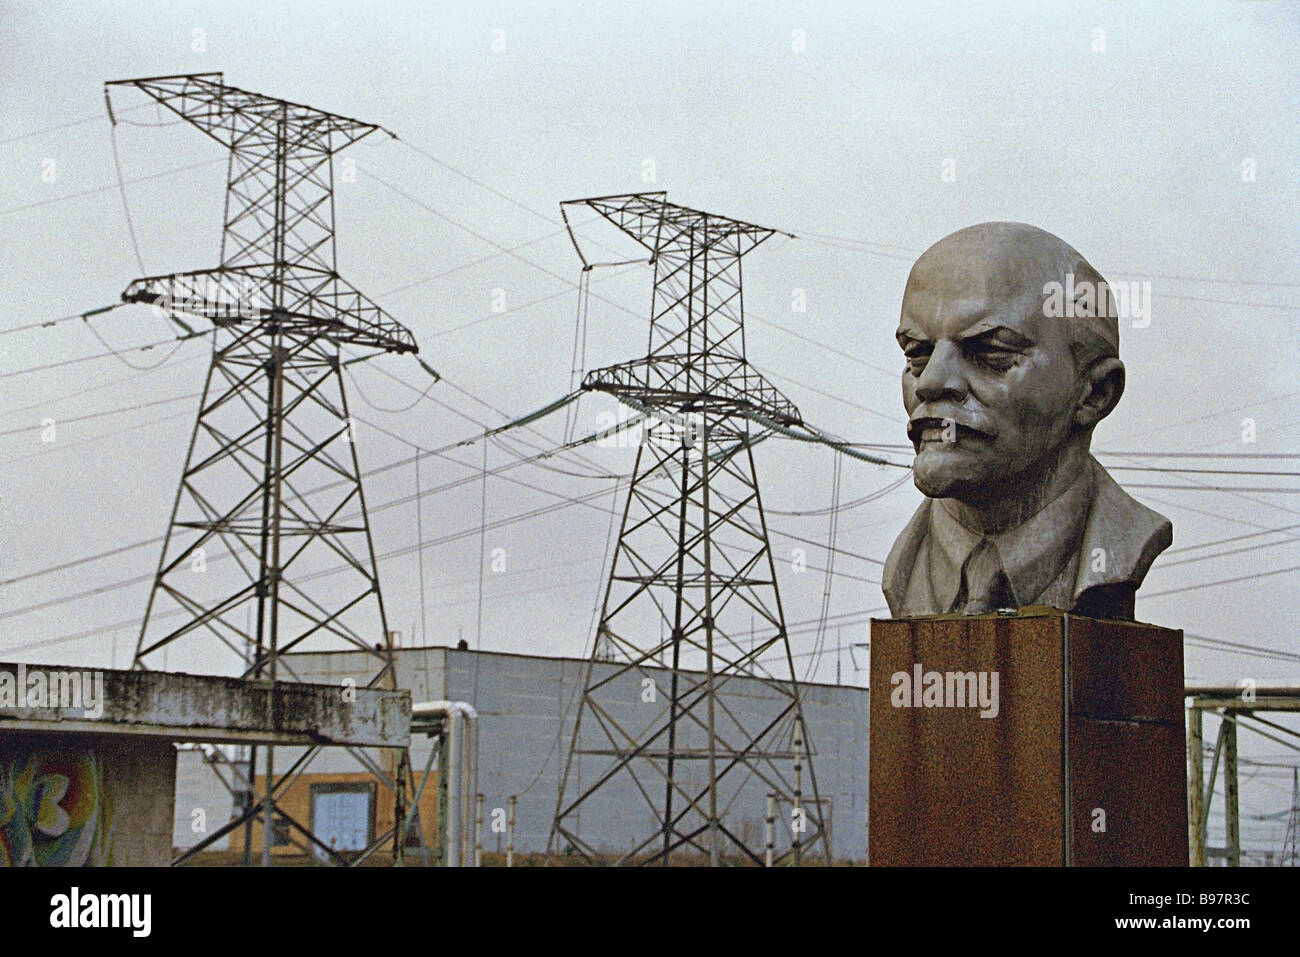 A bust of Lenin at the Chernobyl nuclear power plant - Stock Image